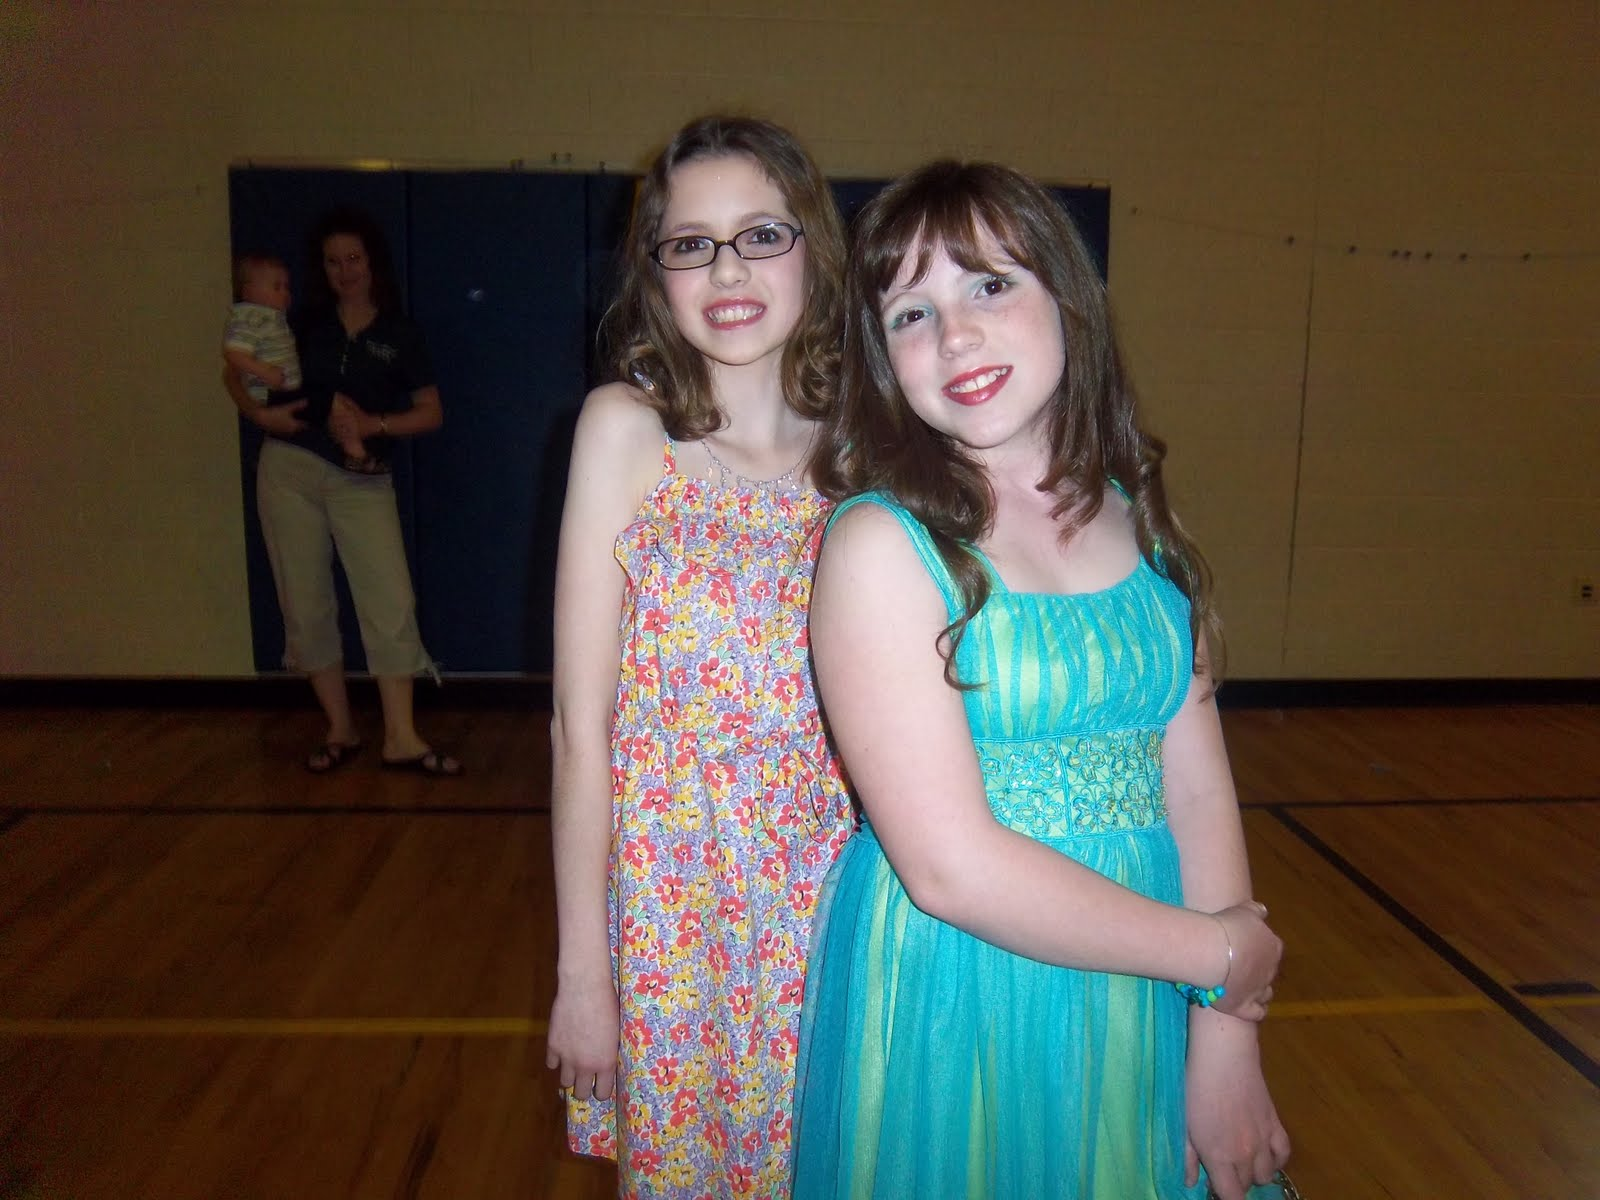 6th Grade Formal Dance Pictures to Pin on Pinterest ...